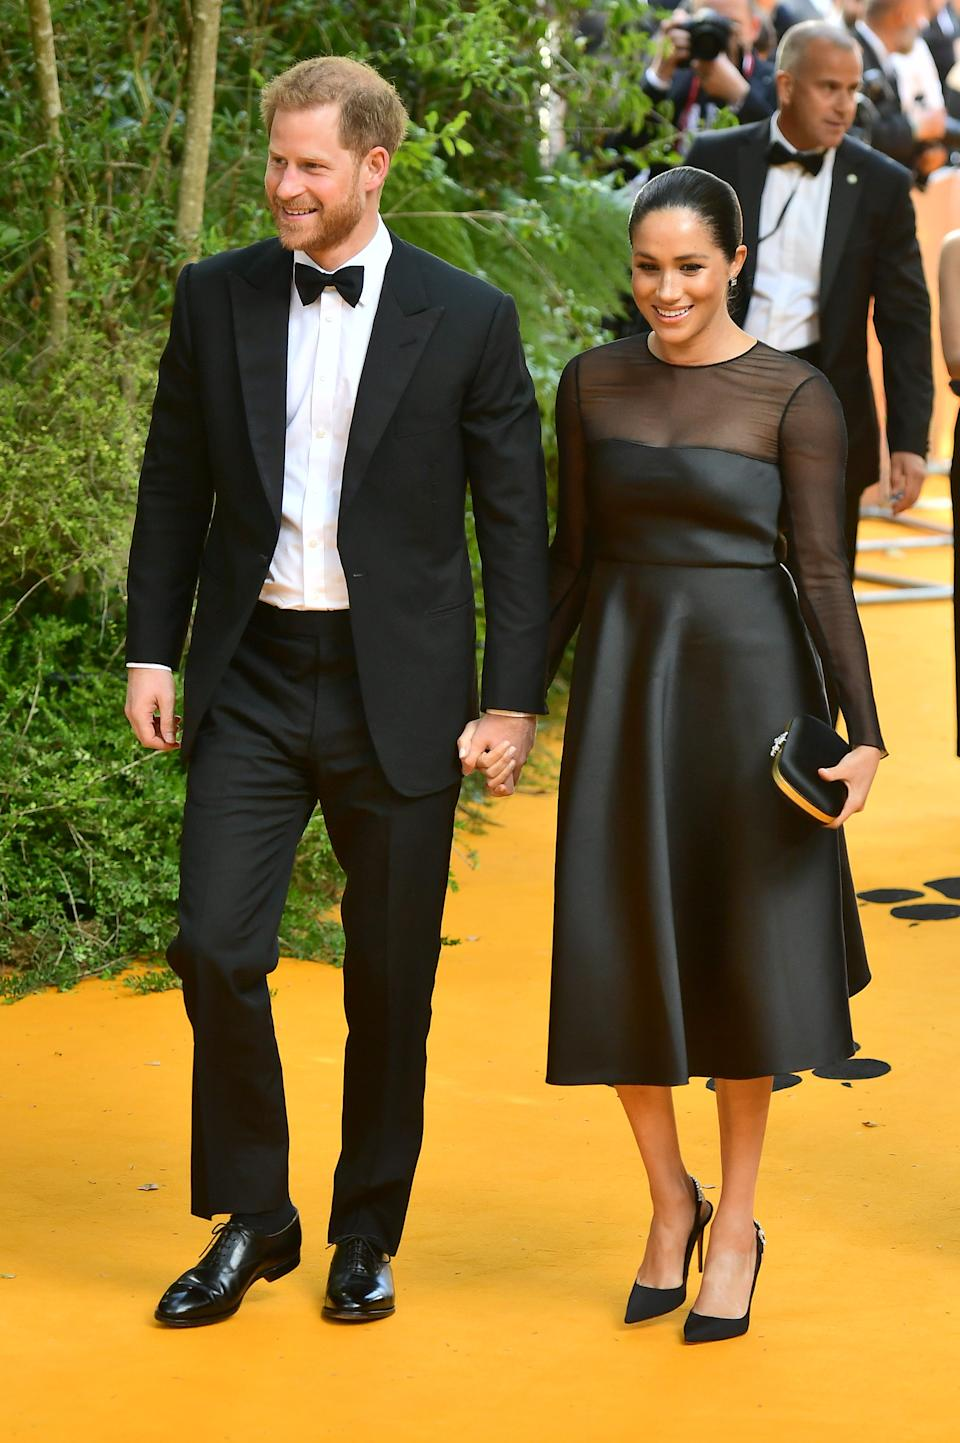 The Duke and Duchess of Sussex arrive on the red carpet in London [Photo: Getty]